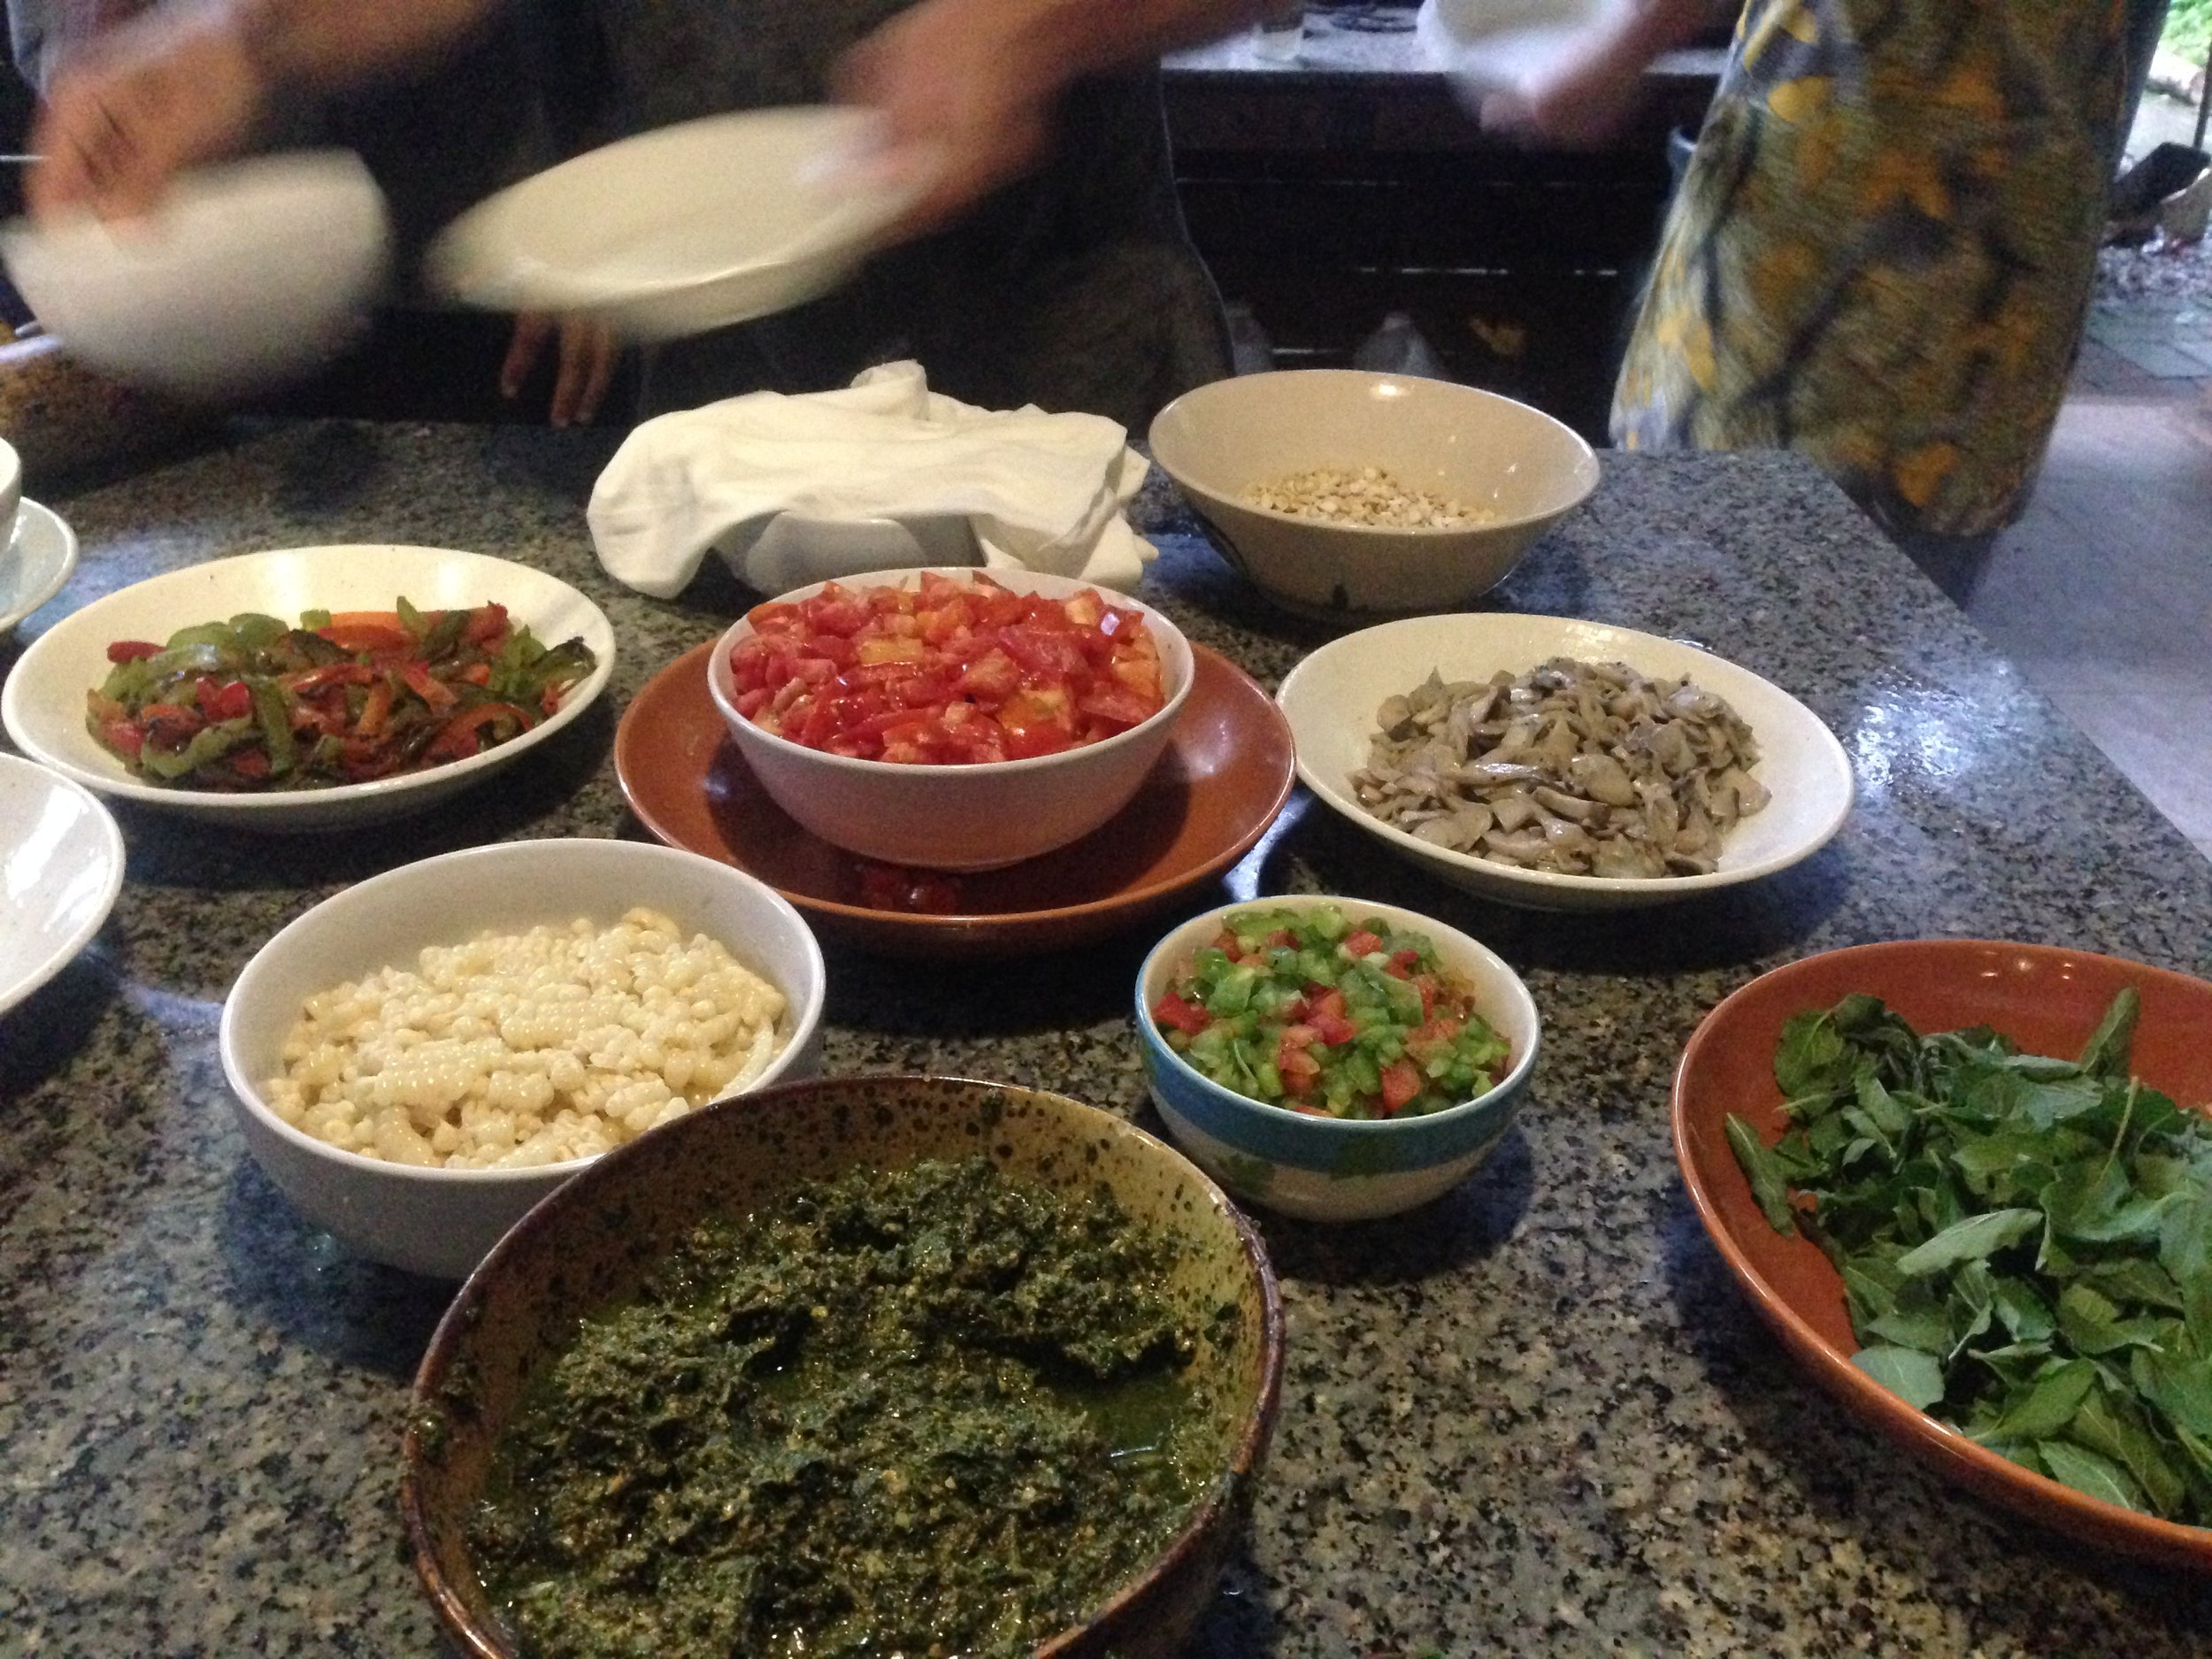 Panya pizza toppings, fresh from the farm and village market. On pizza nights, ALL hands are on deck. There are never too many cooks in a kitchen at Panya :)